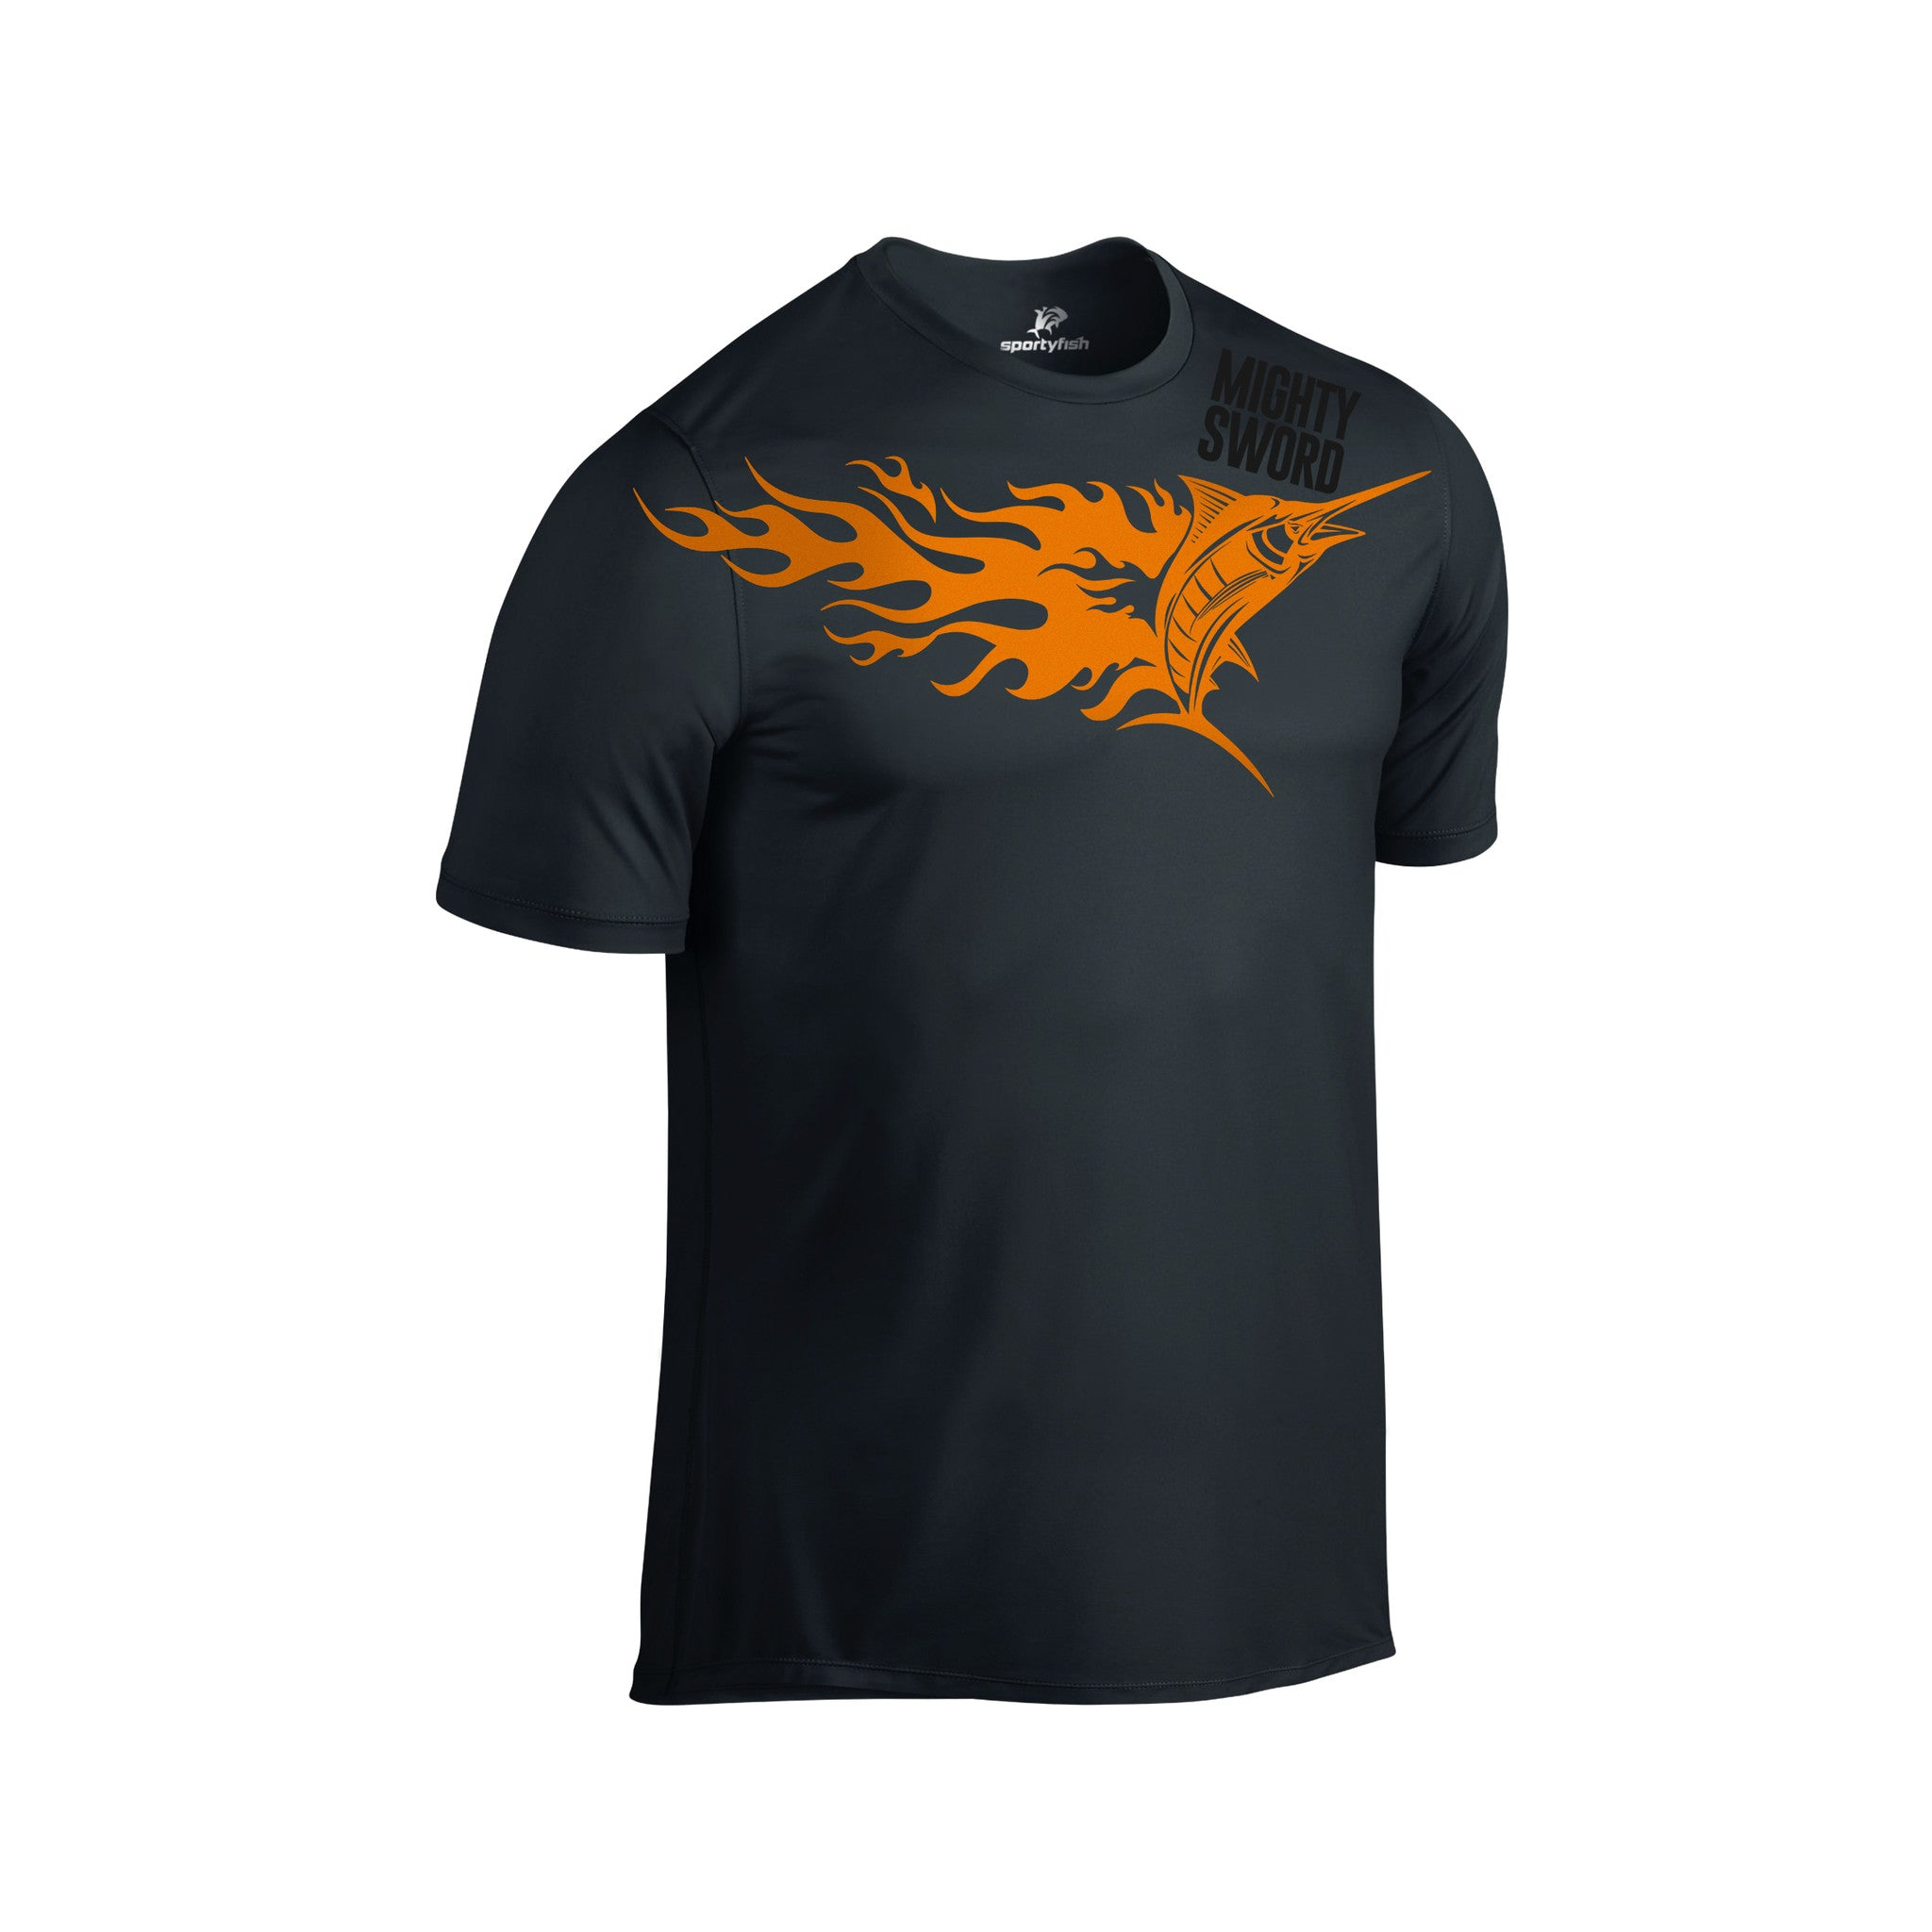 SportyFish Fury Series Black T-shirt(front view): Black Marlin